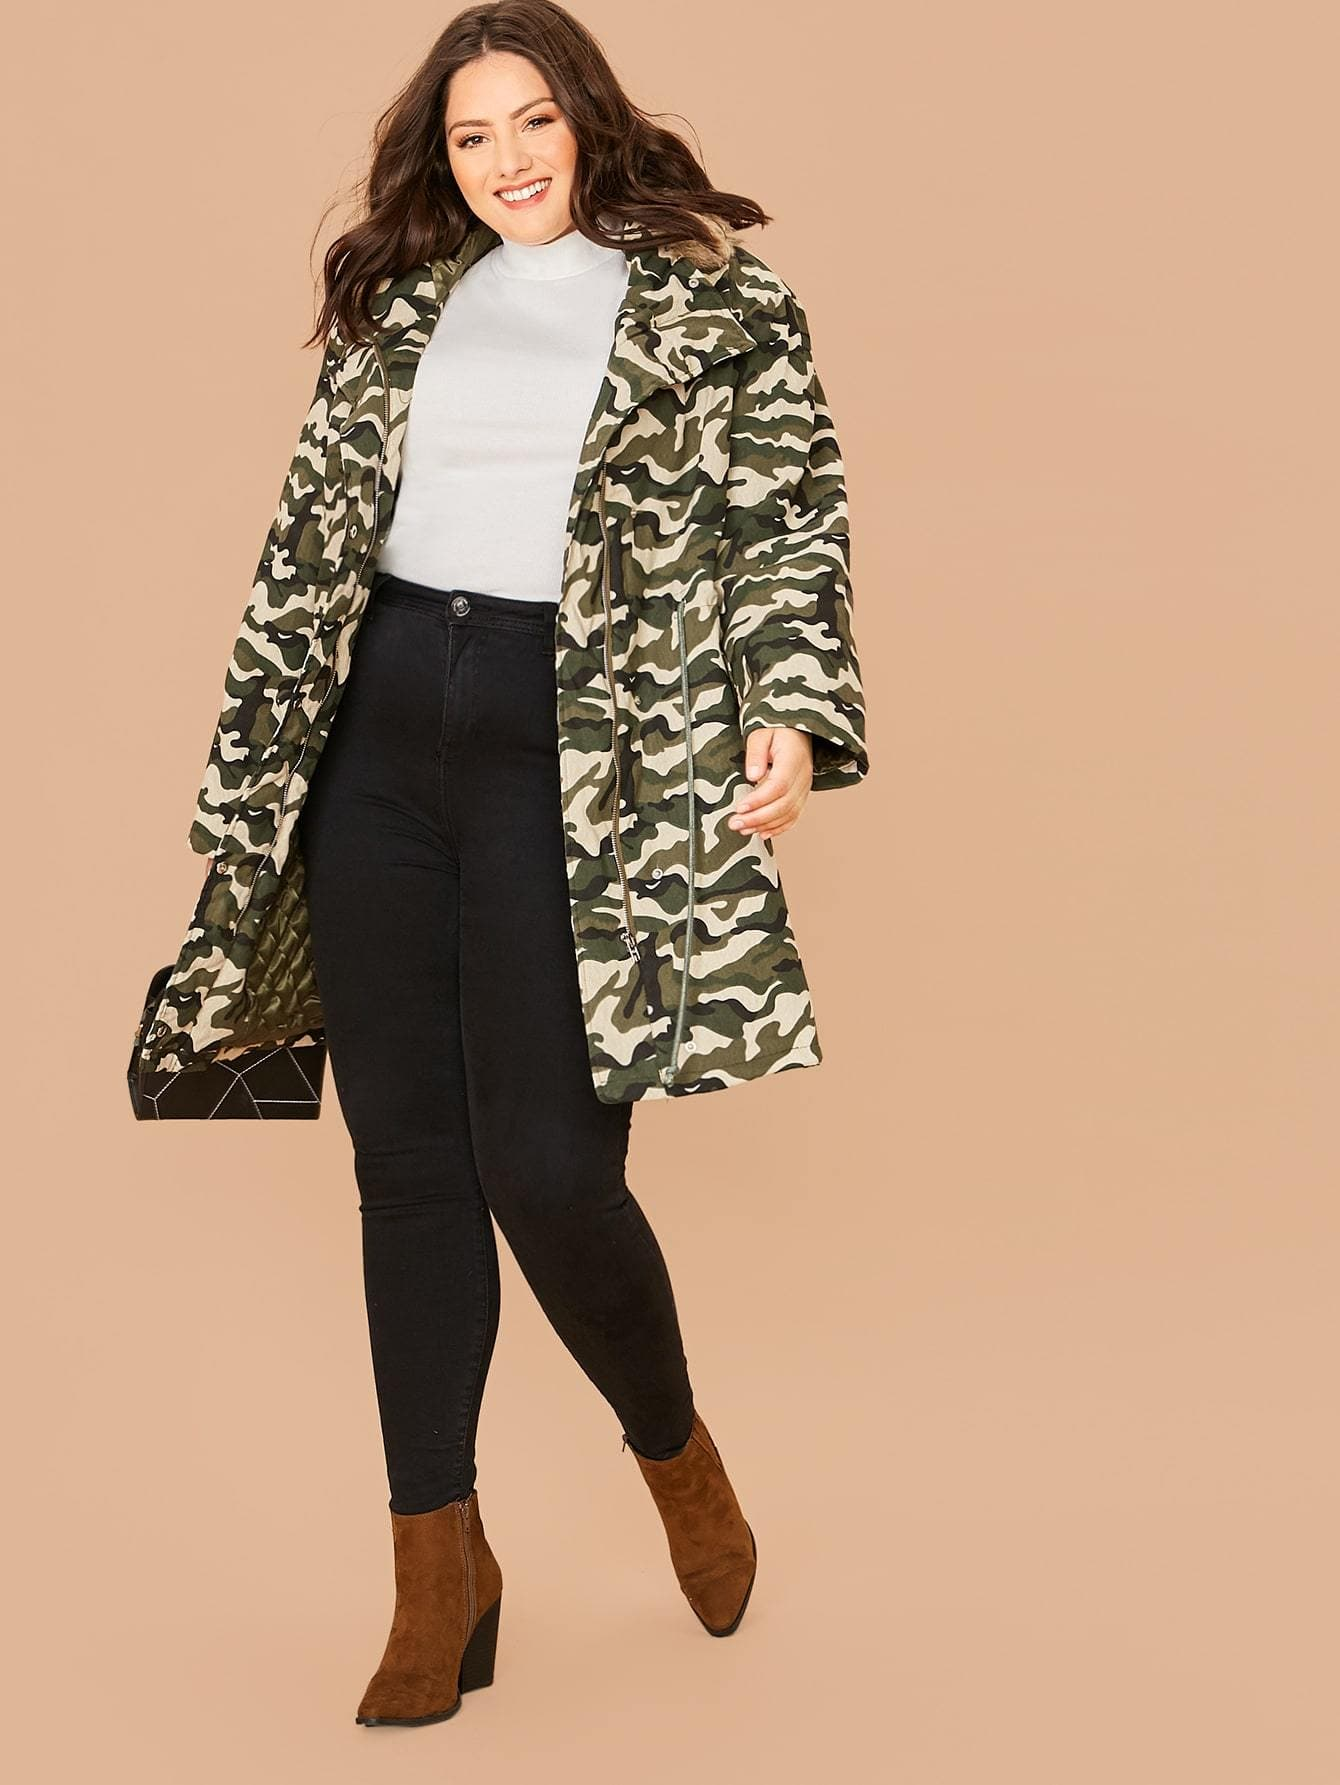 Plus Contrast Faux Fur Detail Camo Print Parka Coat - FLJ CORPORATIONS